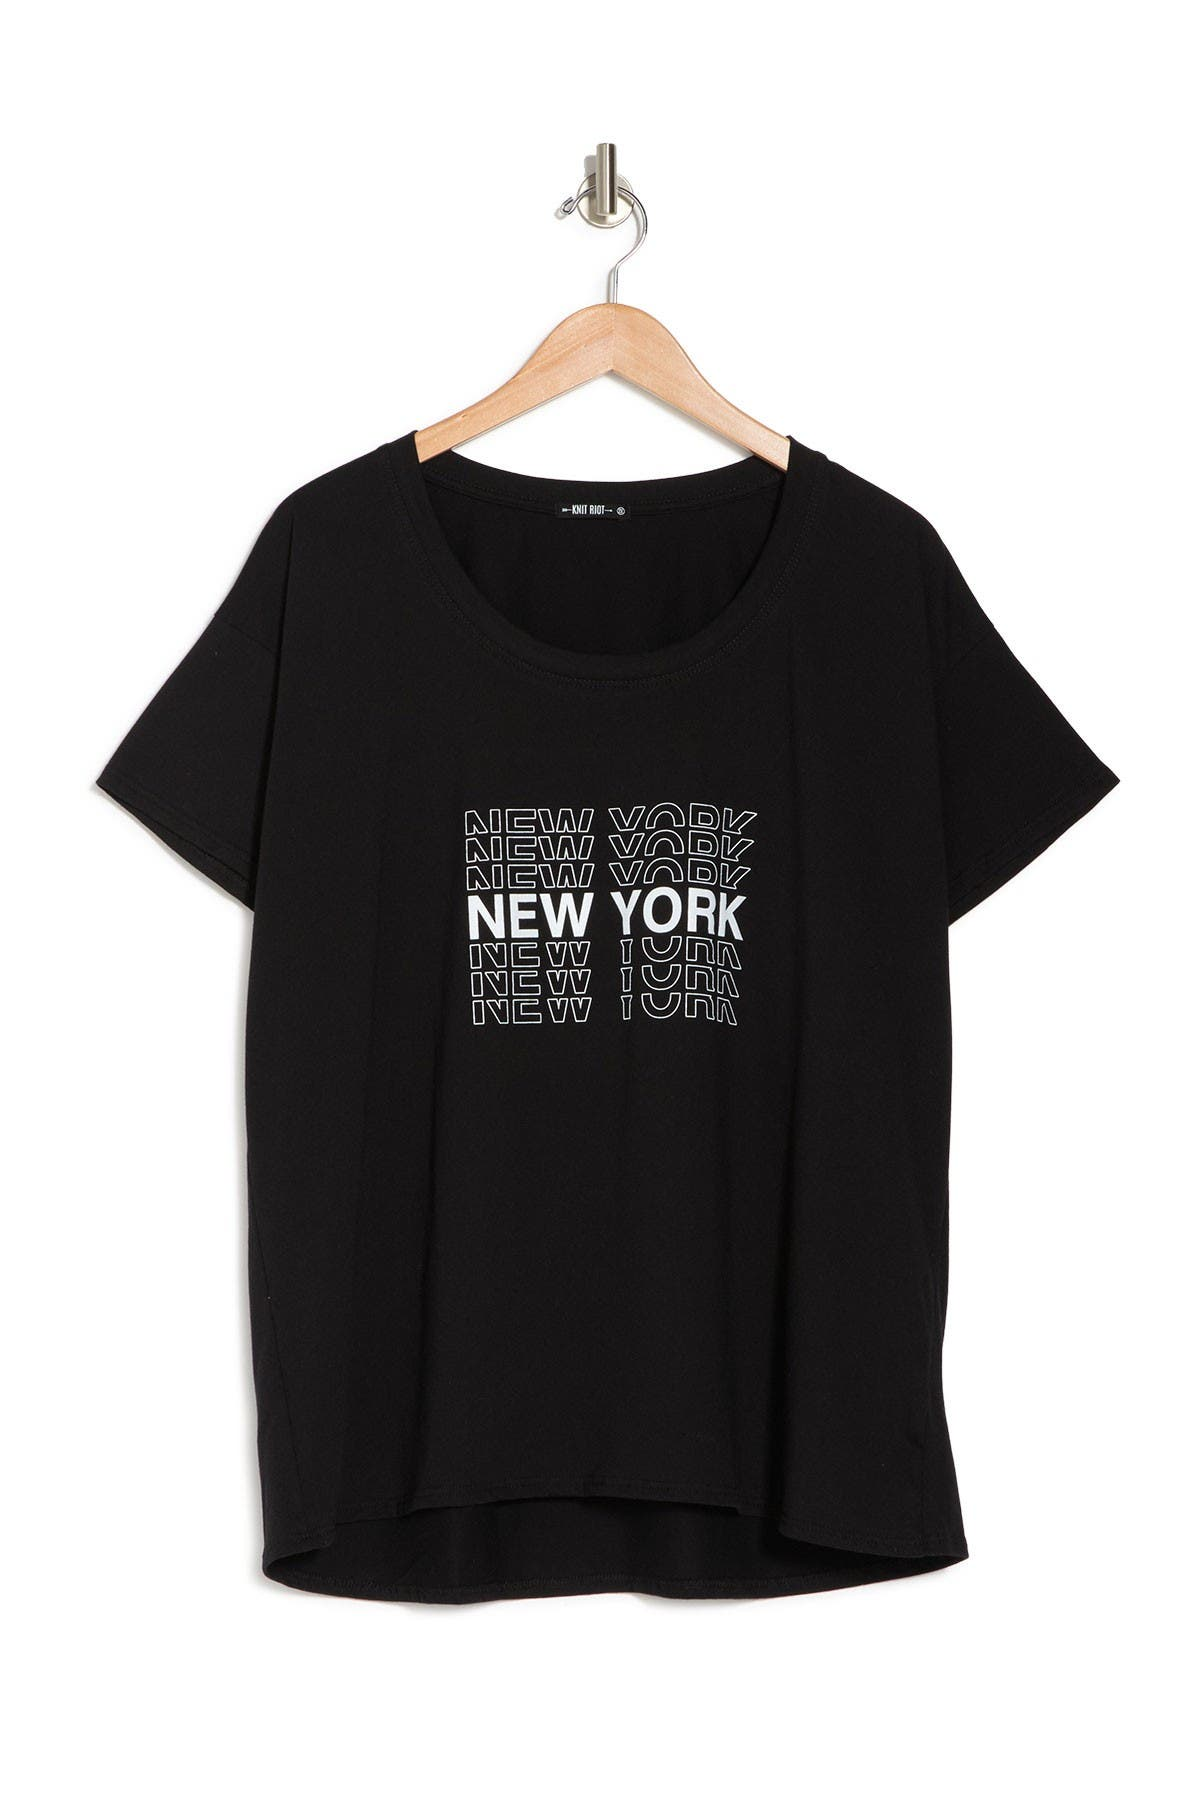 Image of Knit Riot Oversized Short Sleeve New York Tee